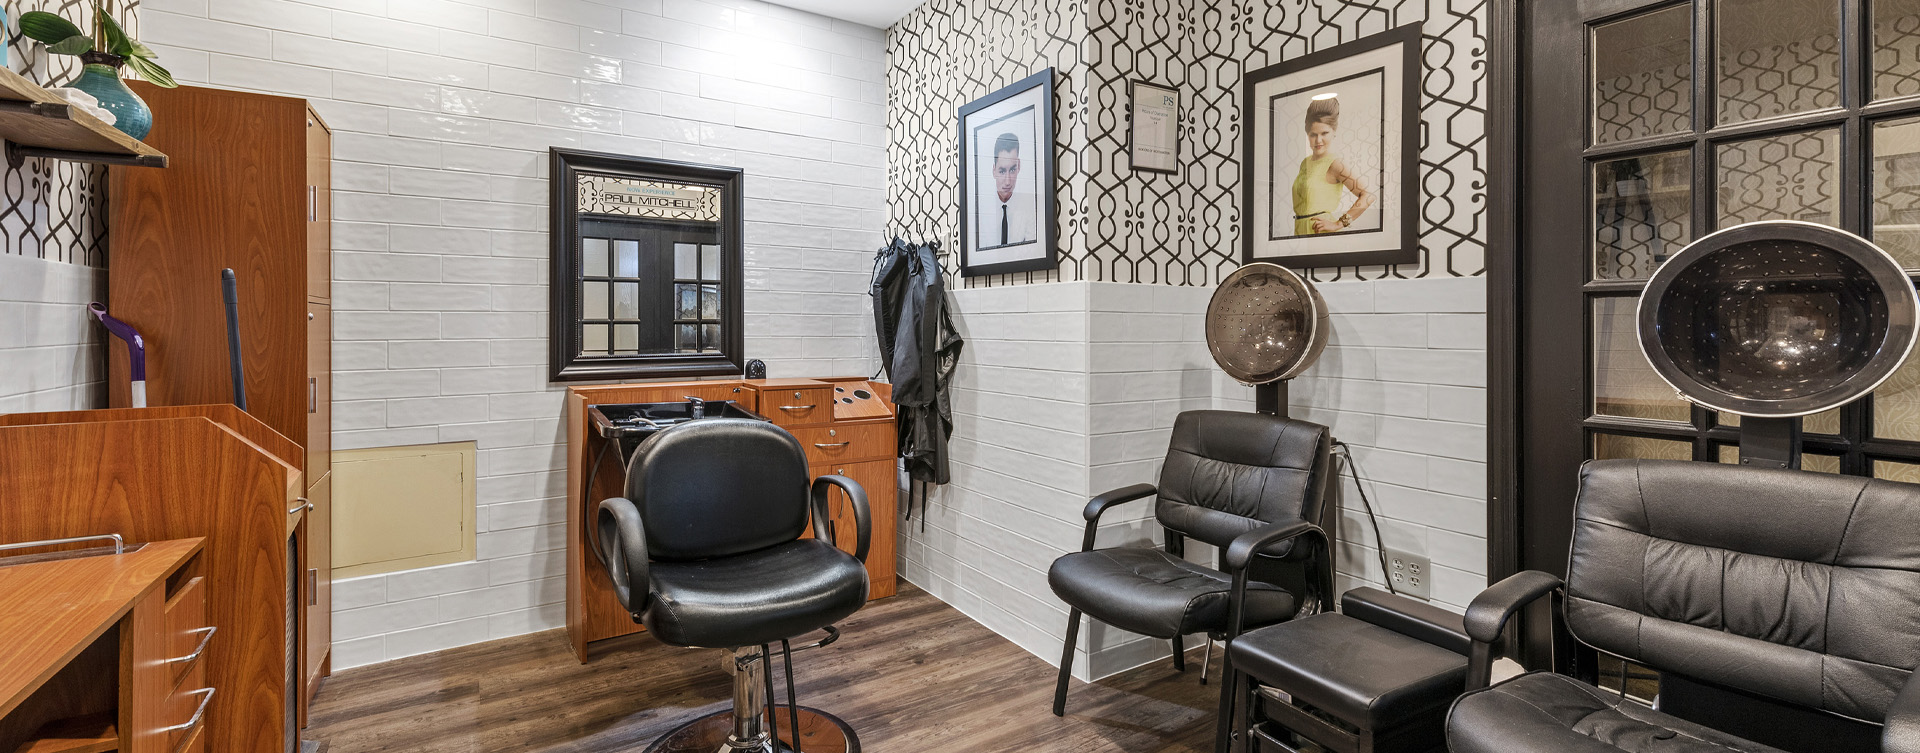 Receive personalized, at-home treatment from our stylist in the salon at Bickford of Worthington